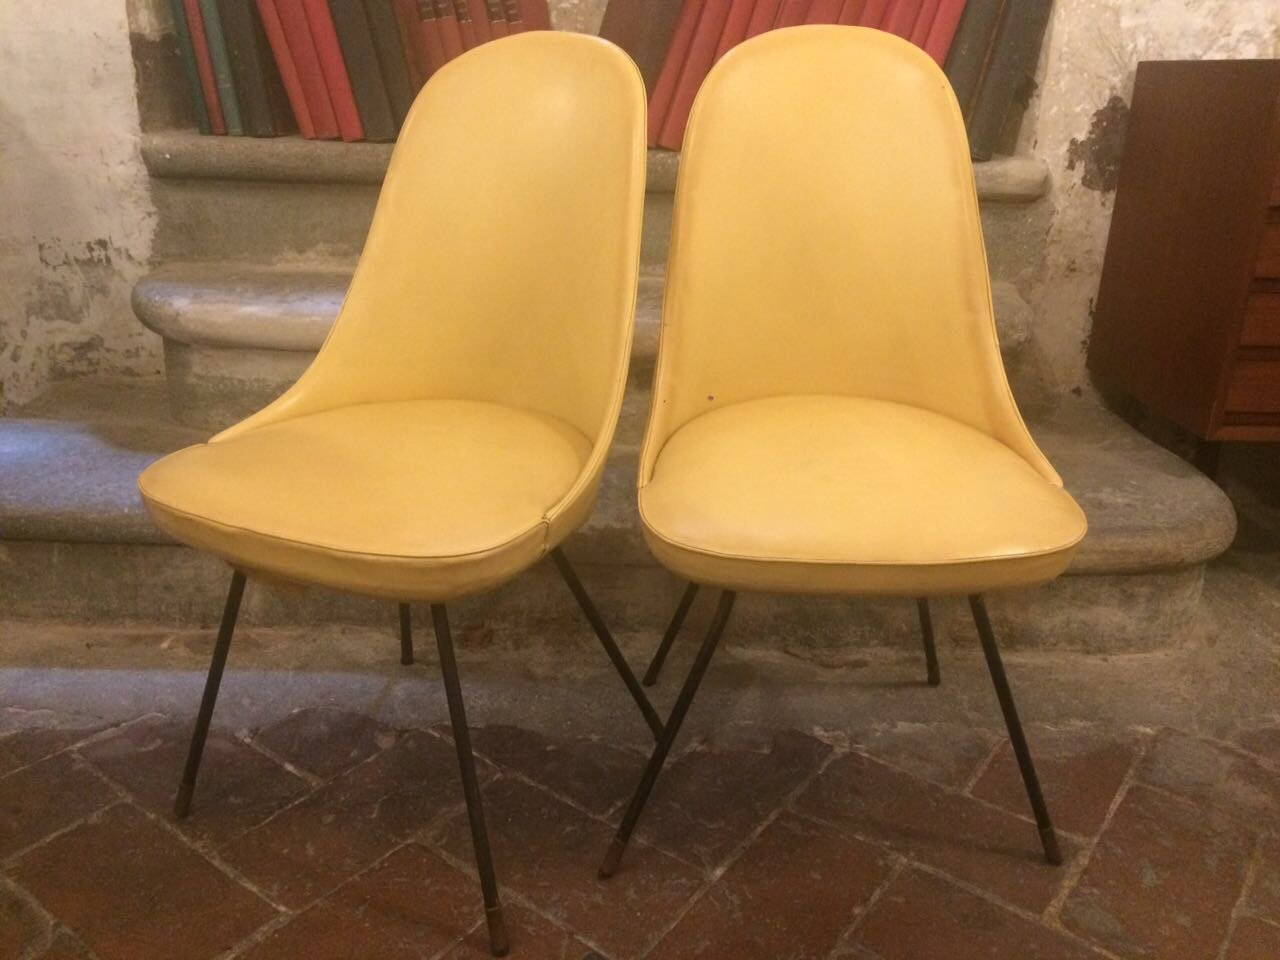 yellow chairs for sale travel potty chair leather from lenzi 1950s set of 2